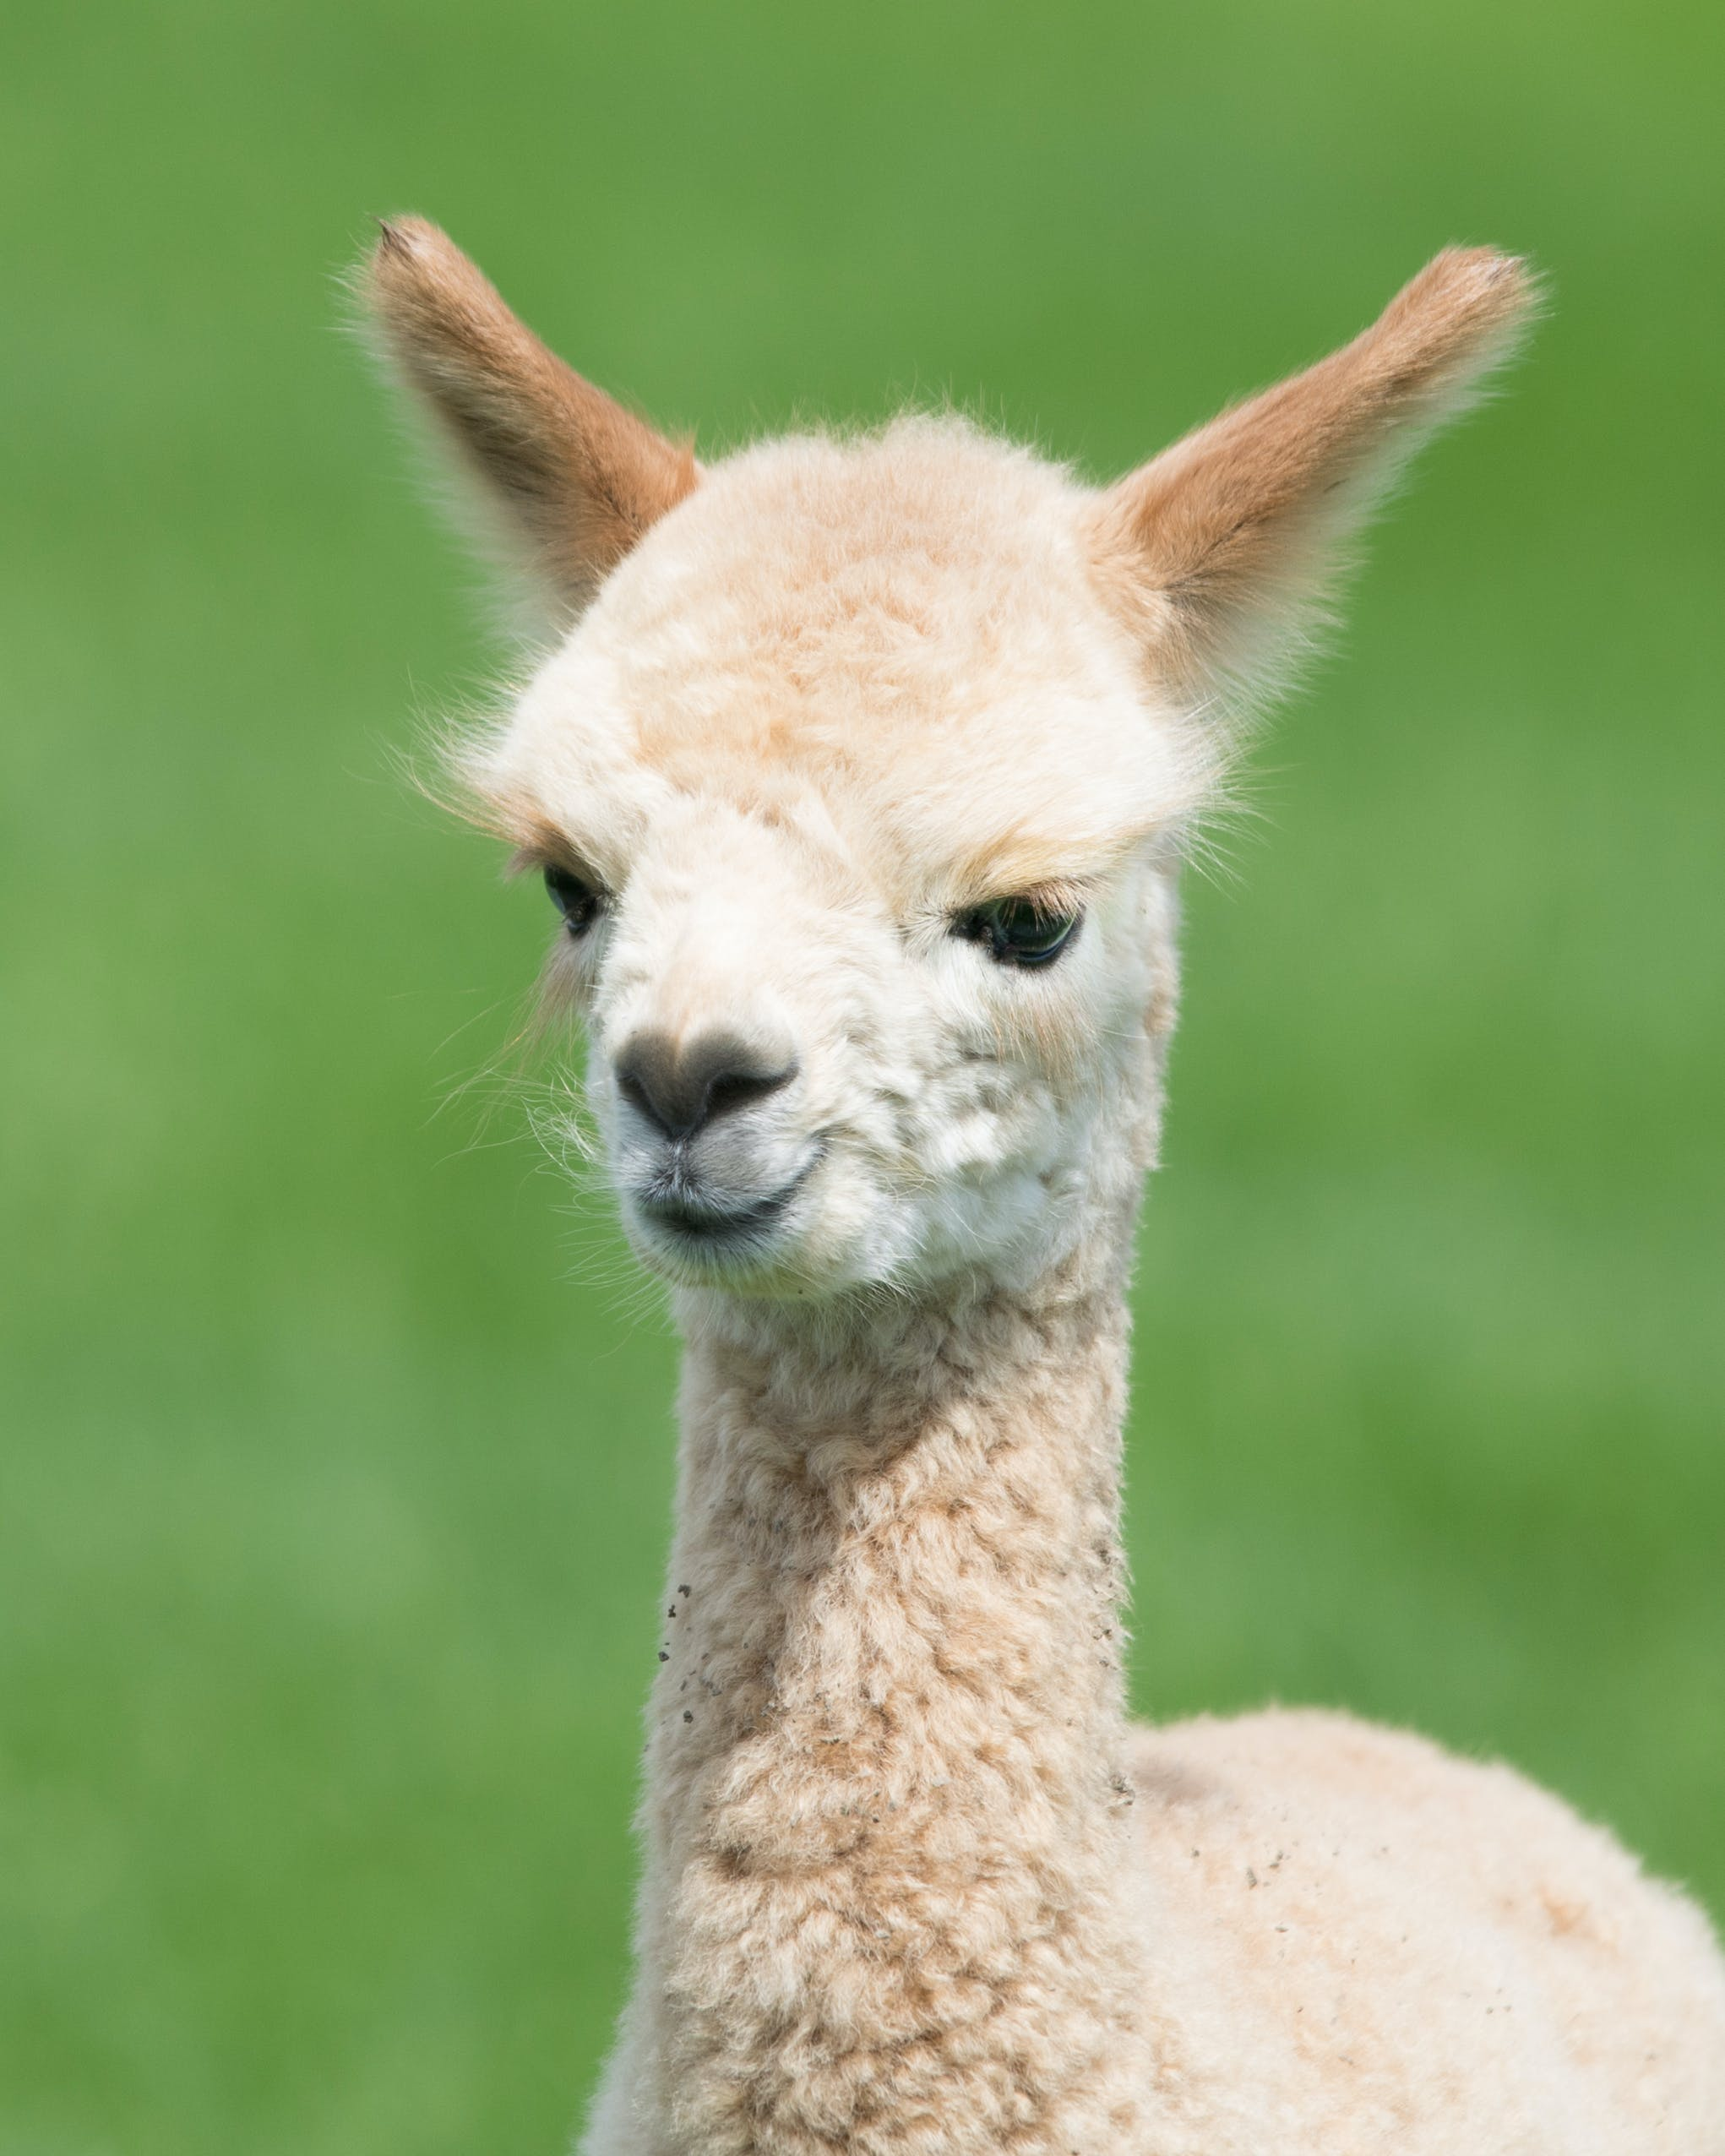 Photo Of A Llama